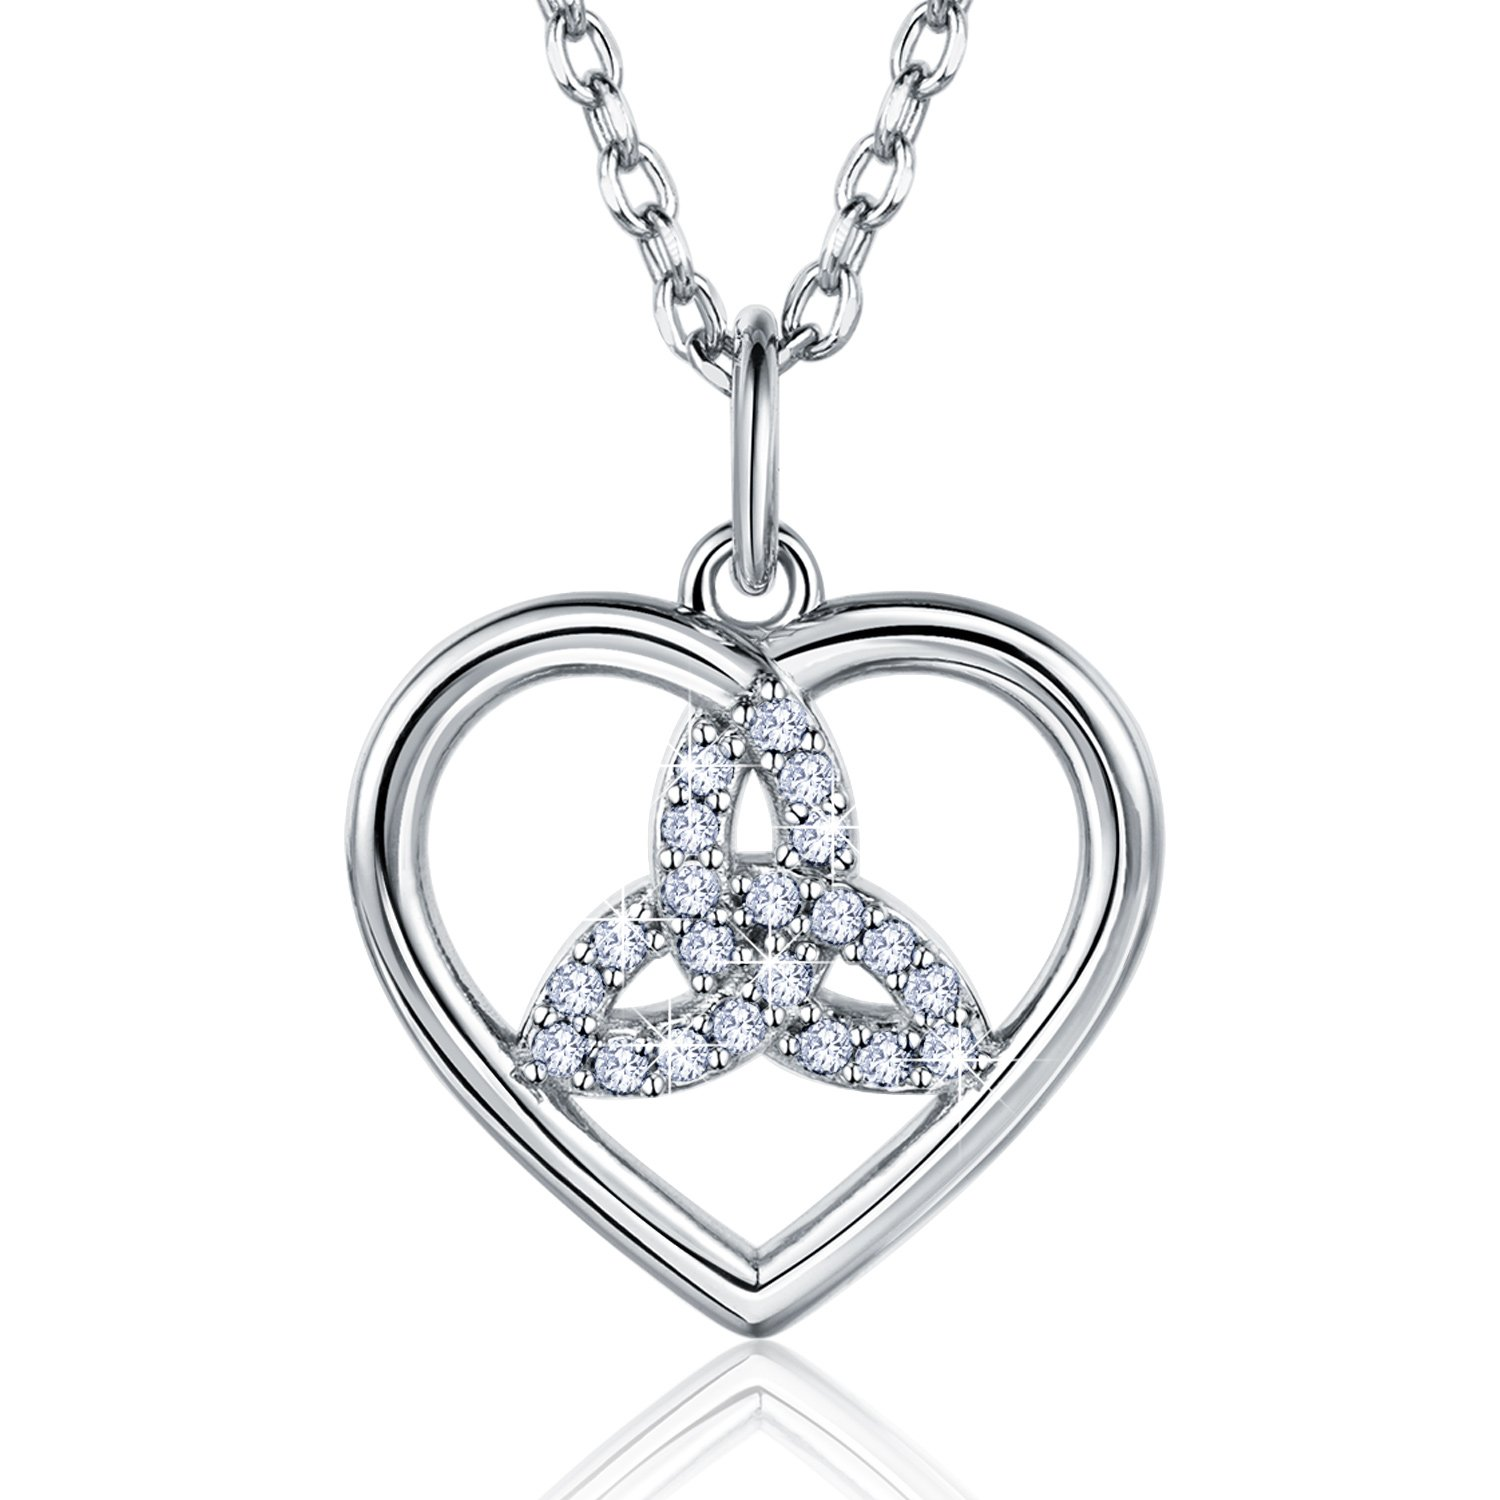 Billie Bijoux 925 Sterling Silver Good Luck Irish Celtic Knot Triangle Vintage Love Heart Pendant White Gold Plated Necklace for Women Birthday Gift 18''